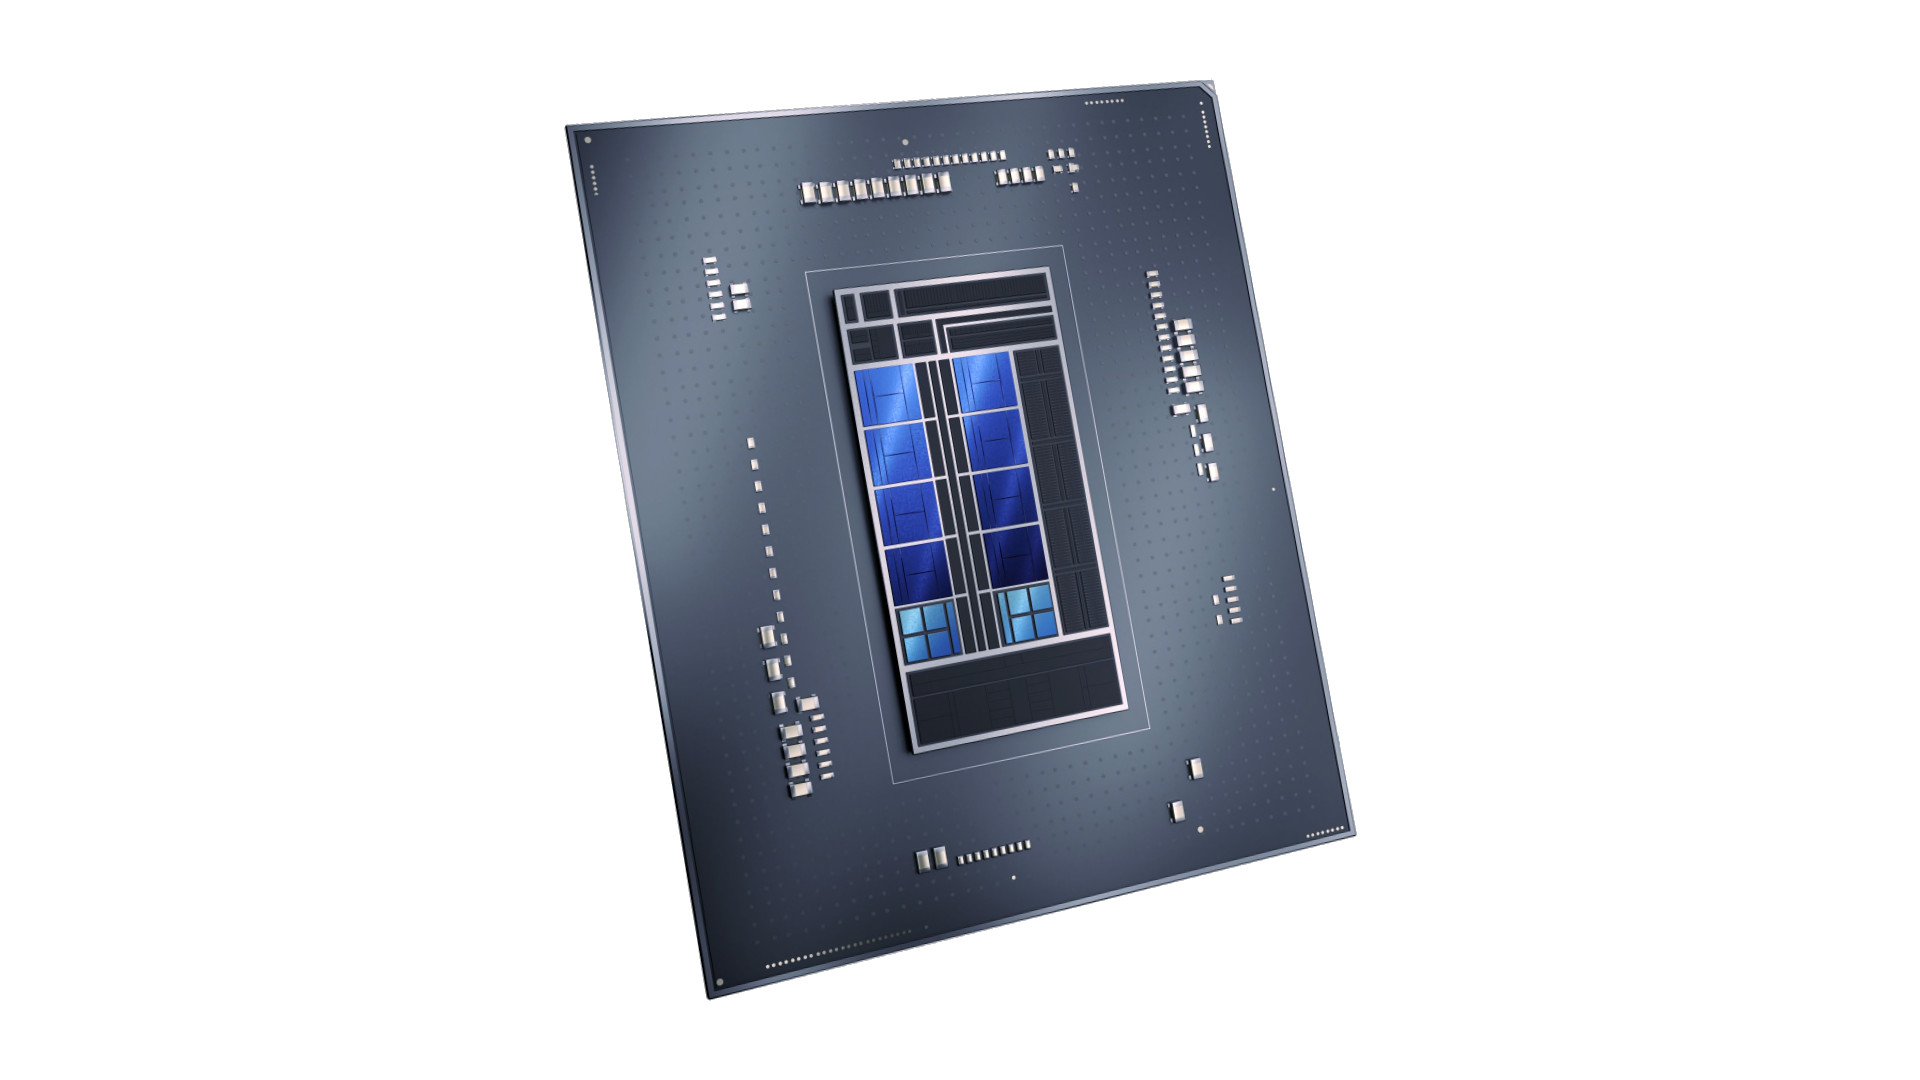 Intel's i9-12900K releases with other Alder Lake CPUs in November